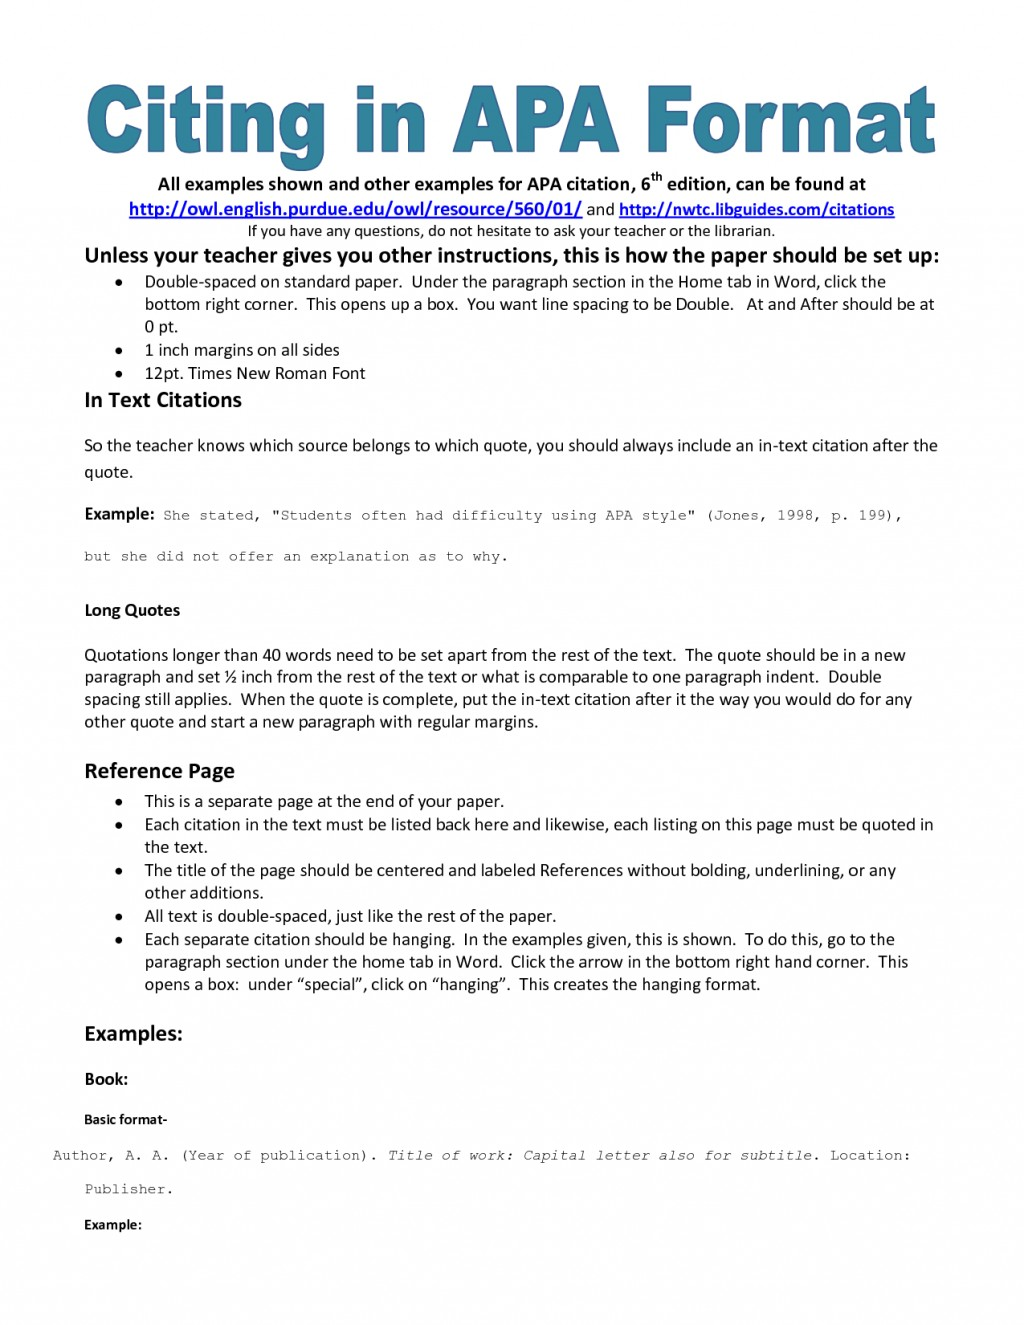 006 Essay Format Apa Fantastic Sample 500 Word Cover Page Large